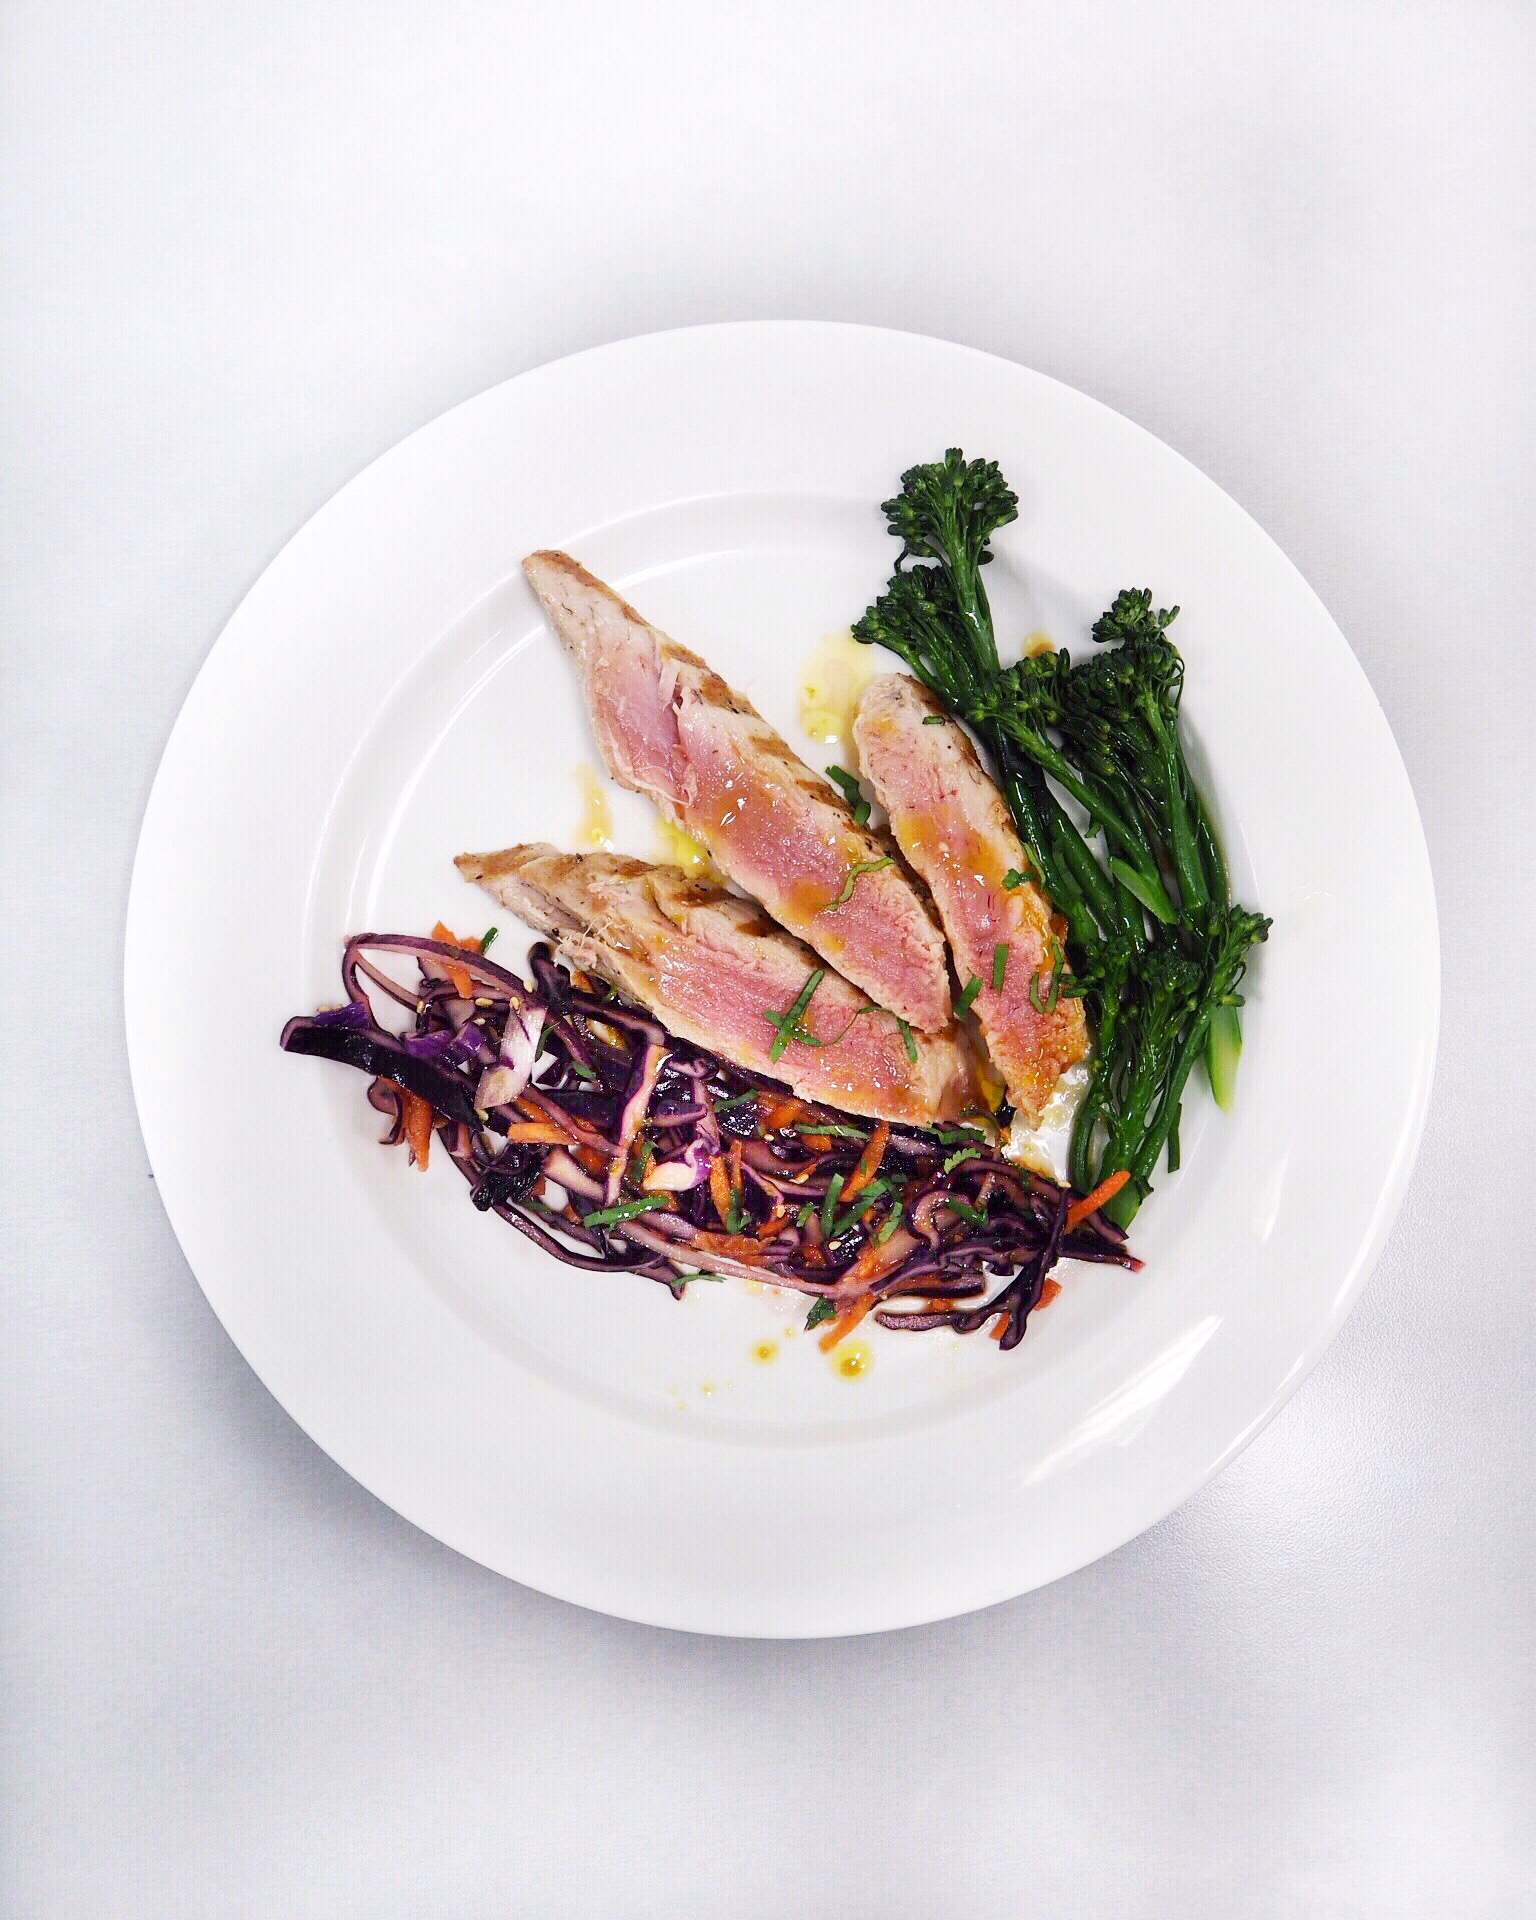 Grilled tuna steak cooked by Andra Constantinescu